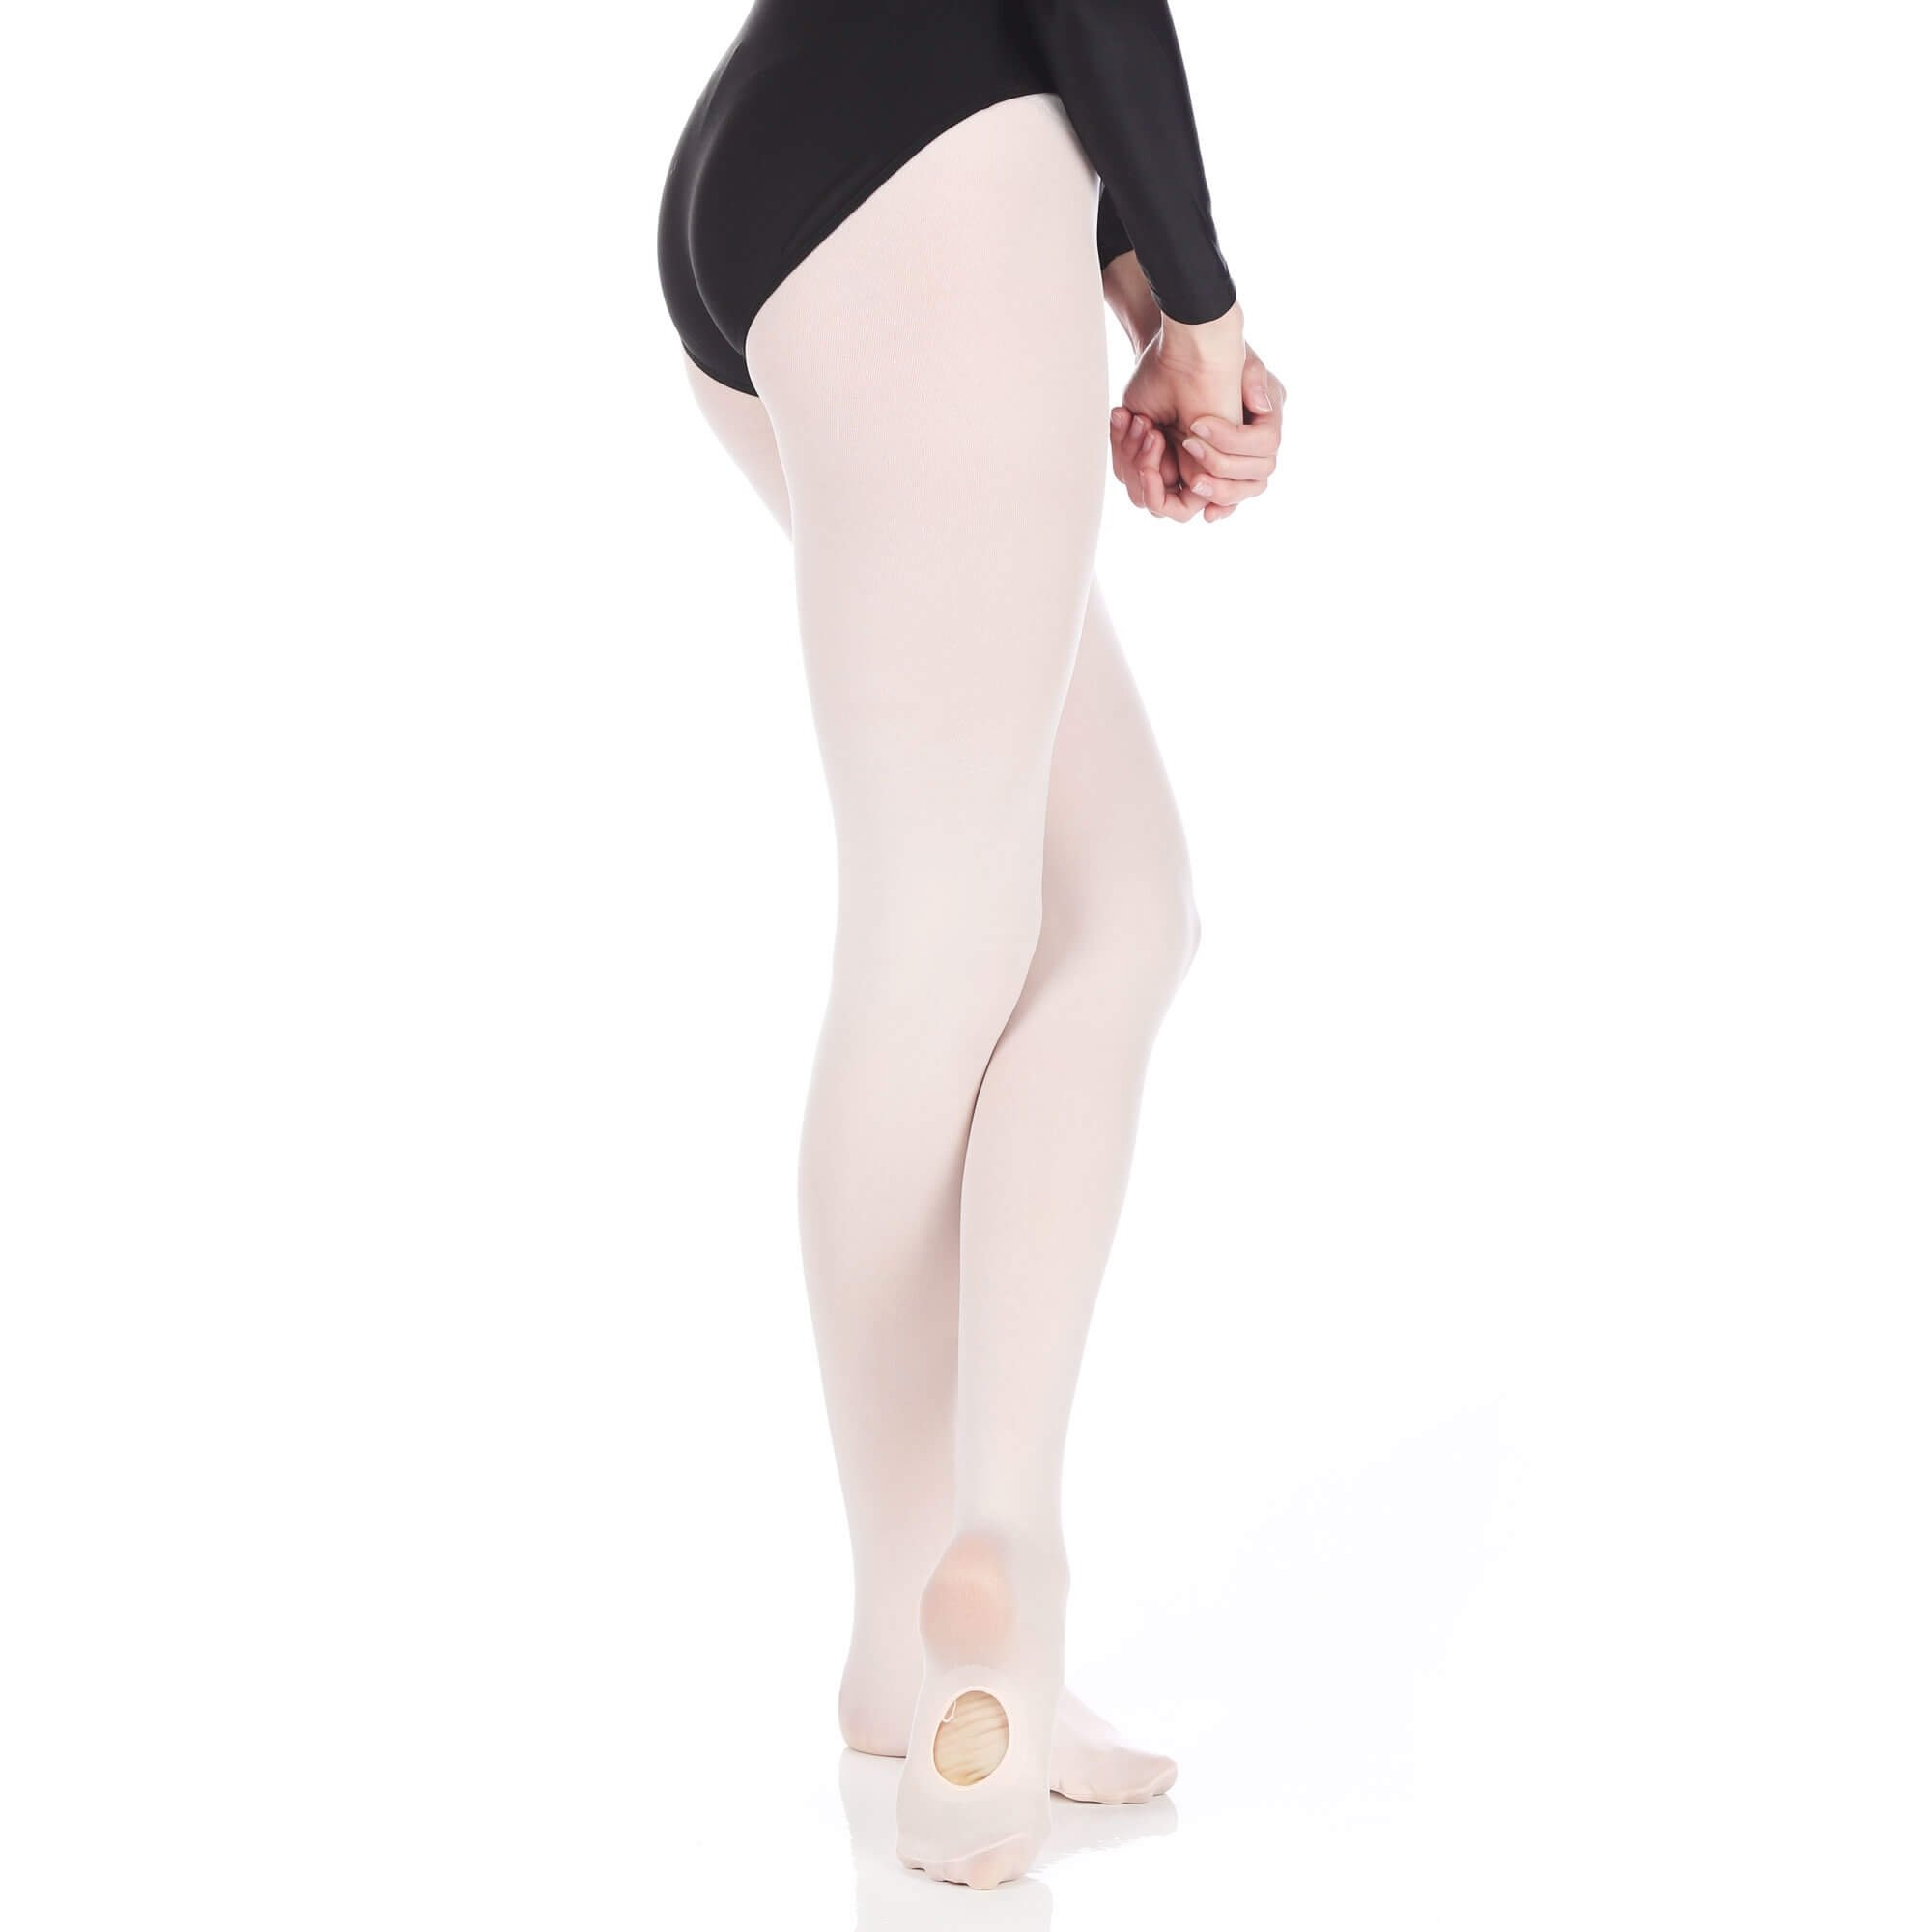 Danzcue Women's Ultrasoft Stretch Convertible Tights